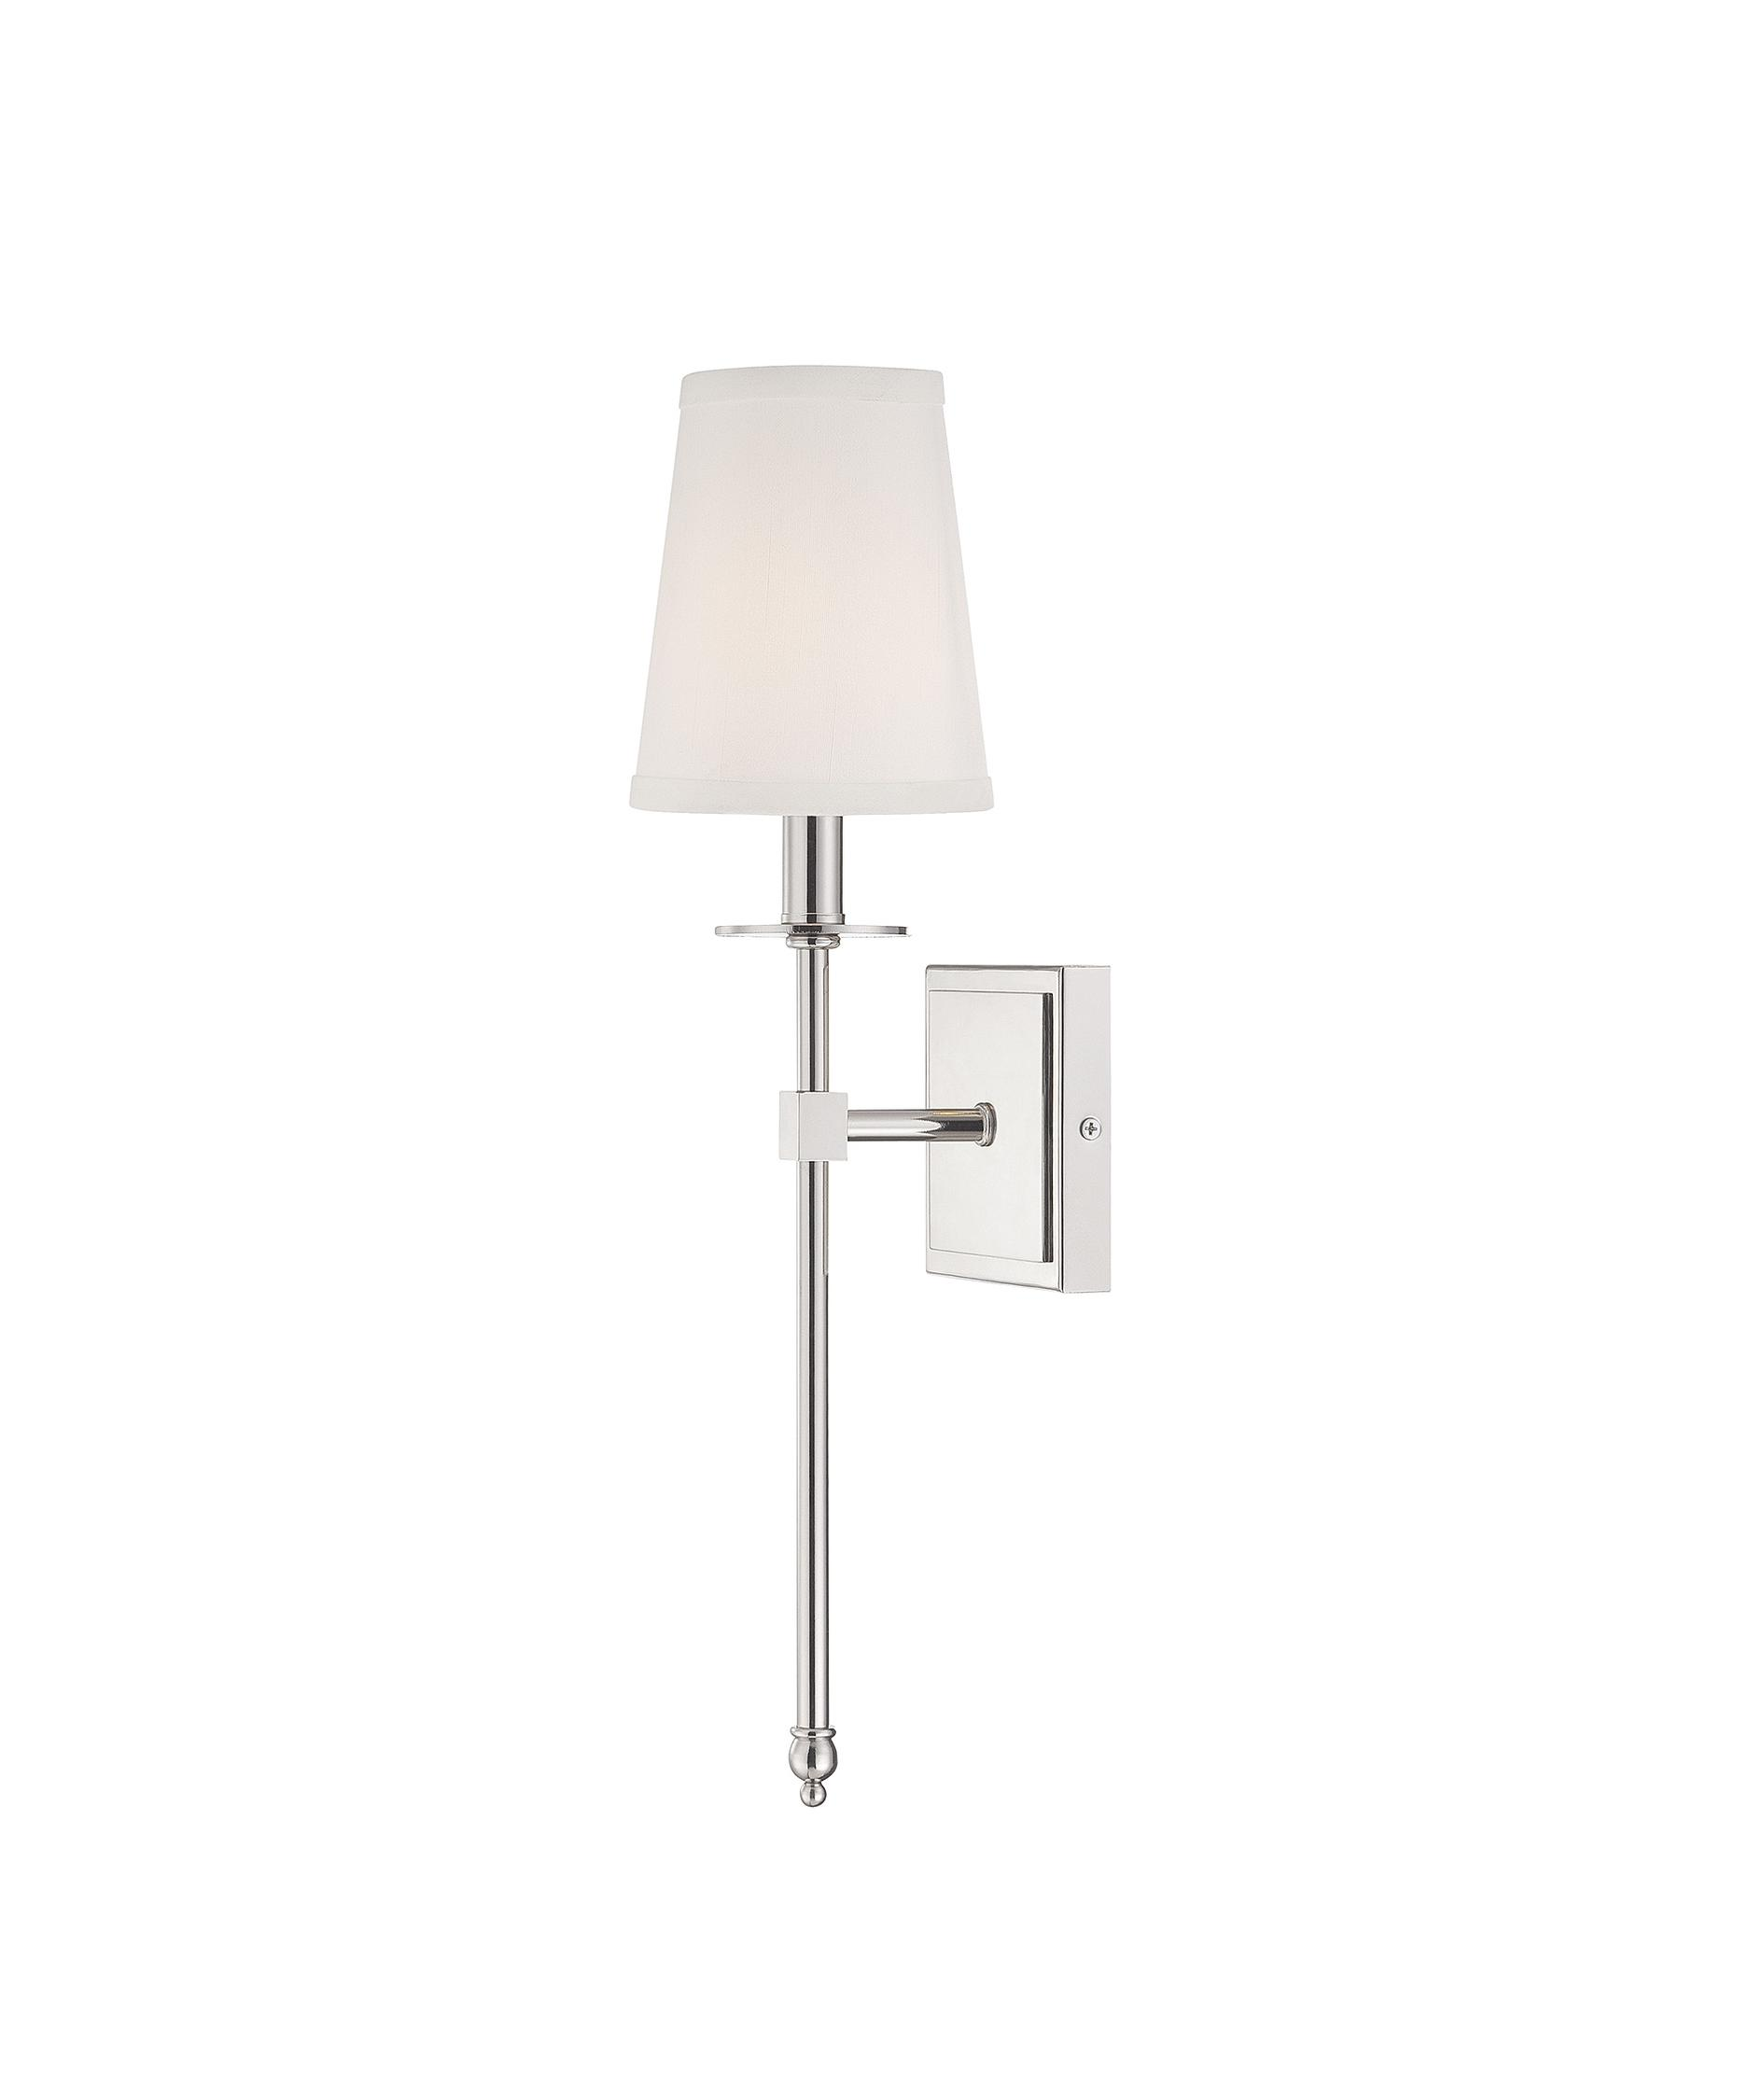 shown in polished nickel finish and soft white fabric shade - Savoy Lighting